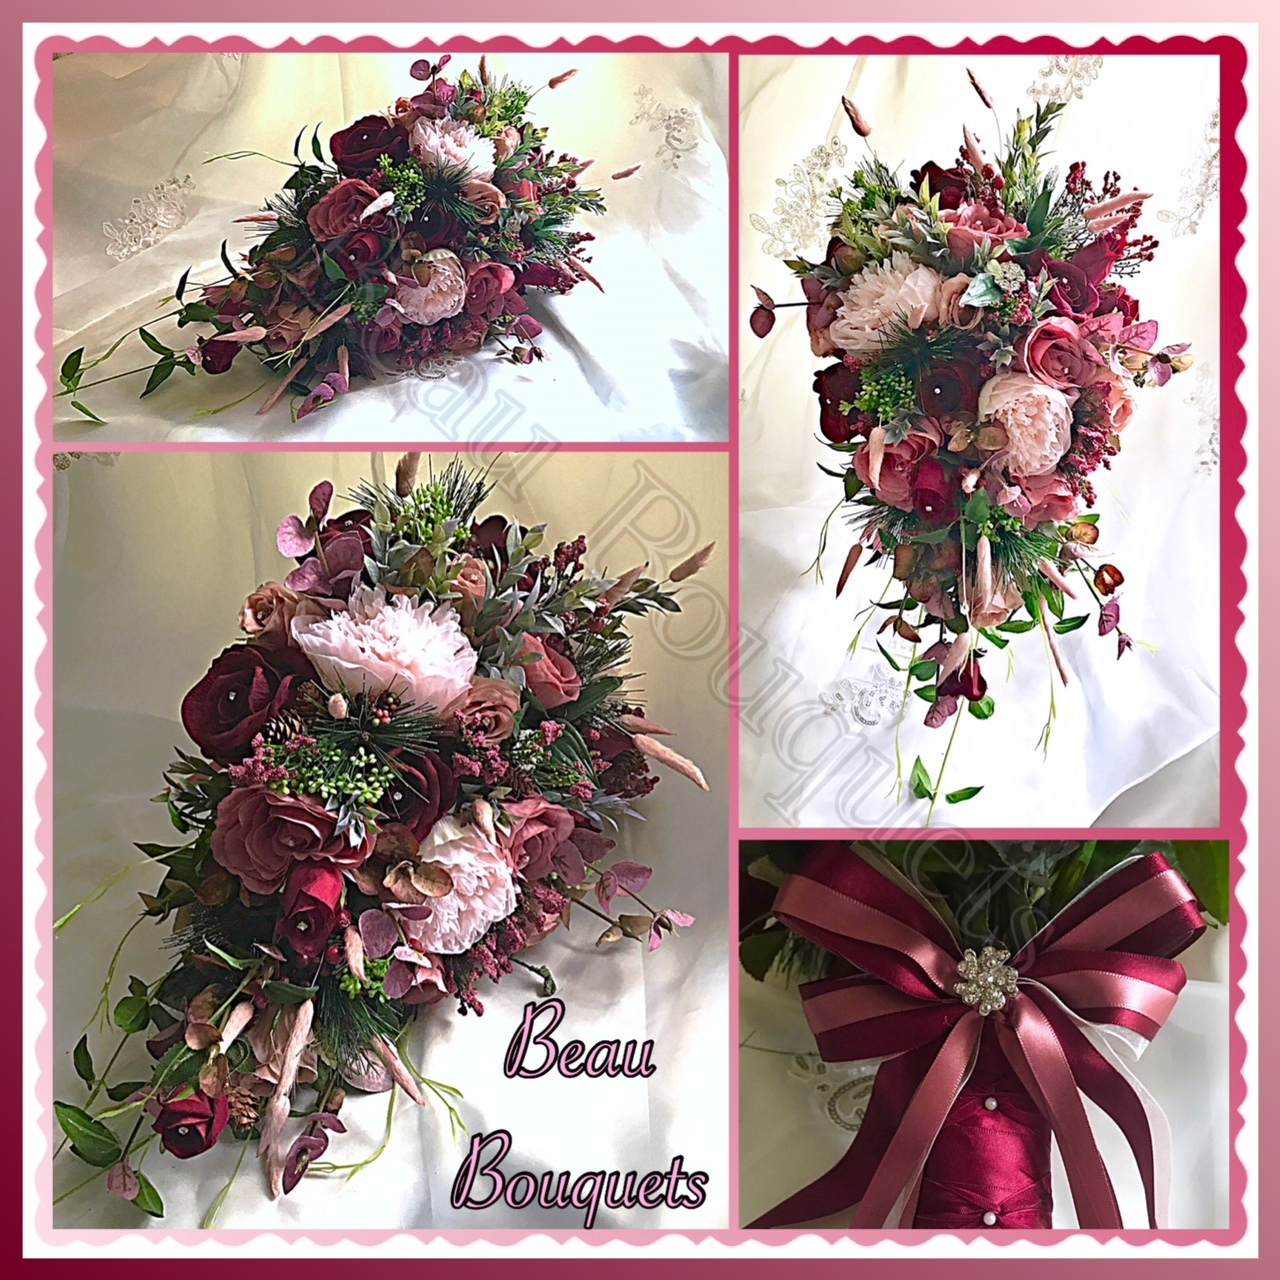 TRUE LOVE - Cascade bride bouquet package Wintry burgundy & dusky pink roses, spruce, fir cones, berries adn dusky green foliage